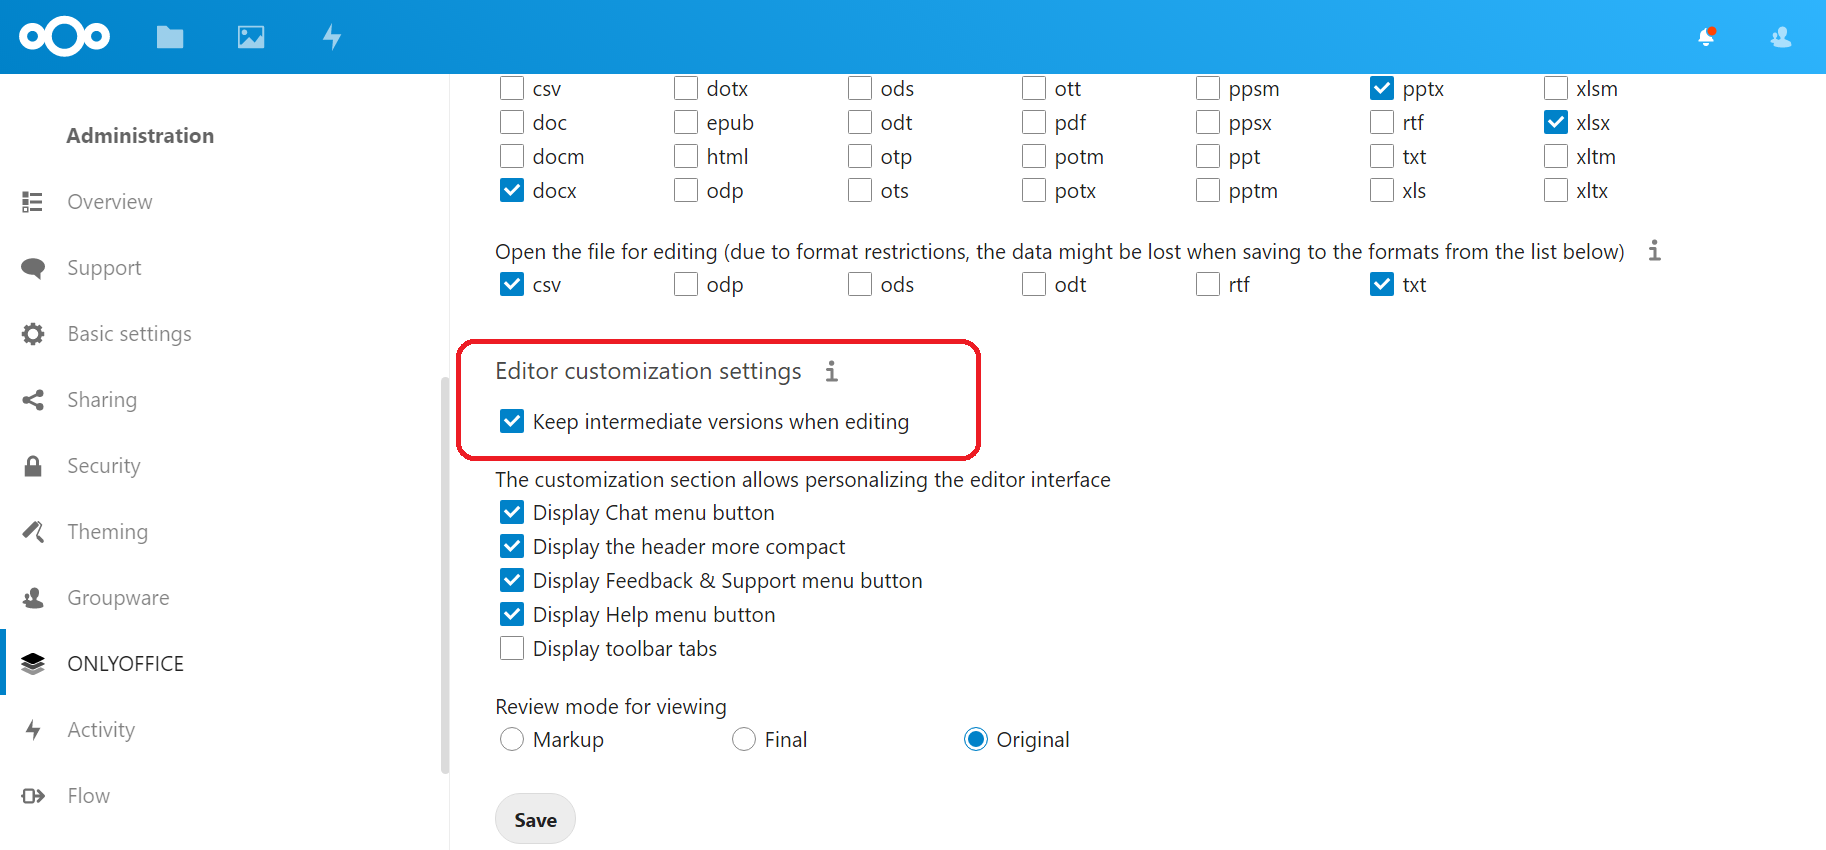 ONLYOFFICE connector v.6.0.0 for Nextcloud with Force Save is available